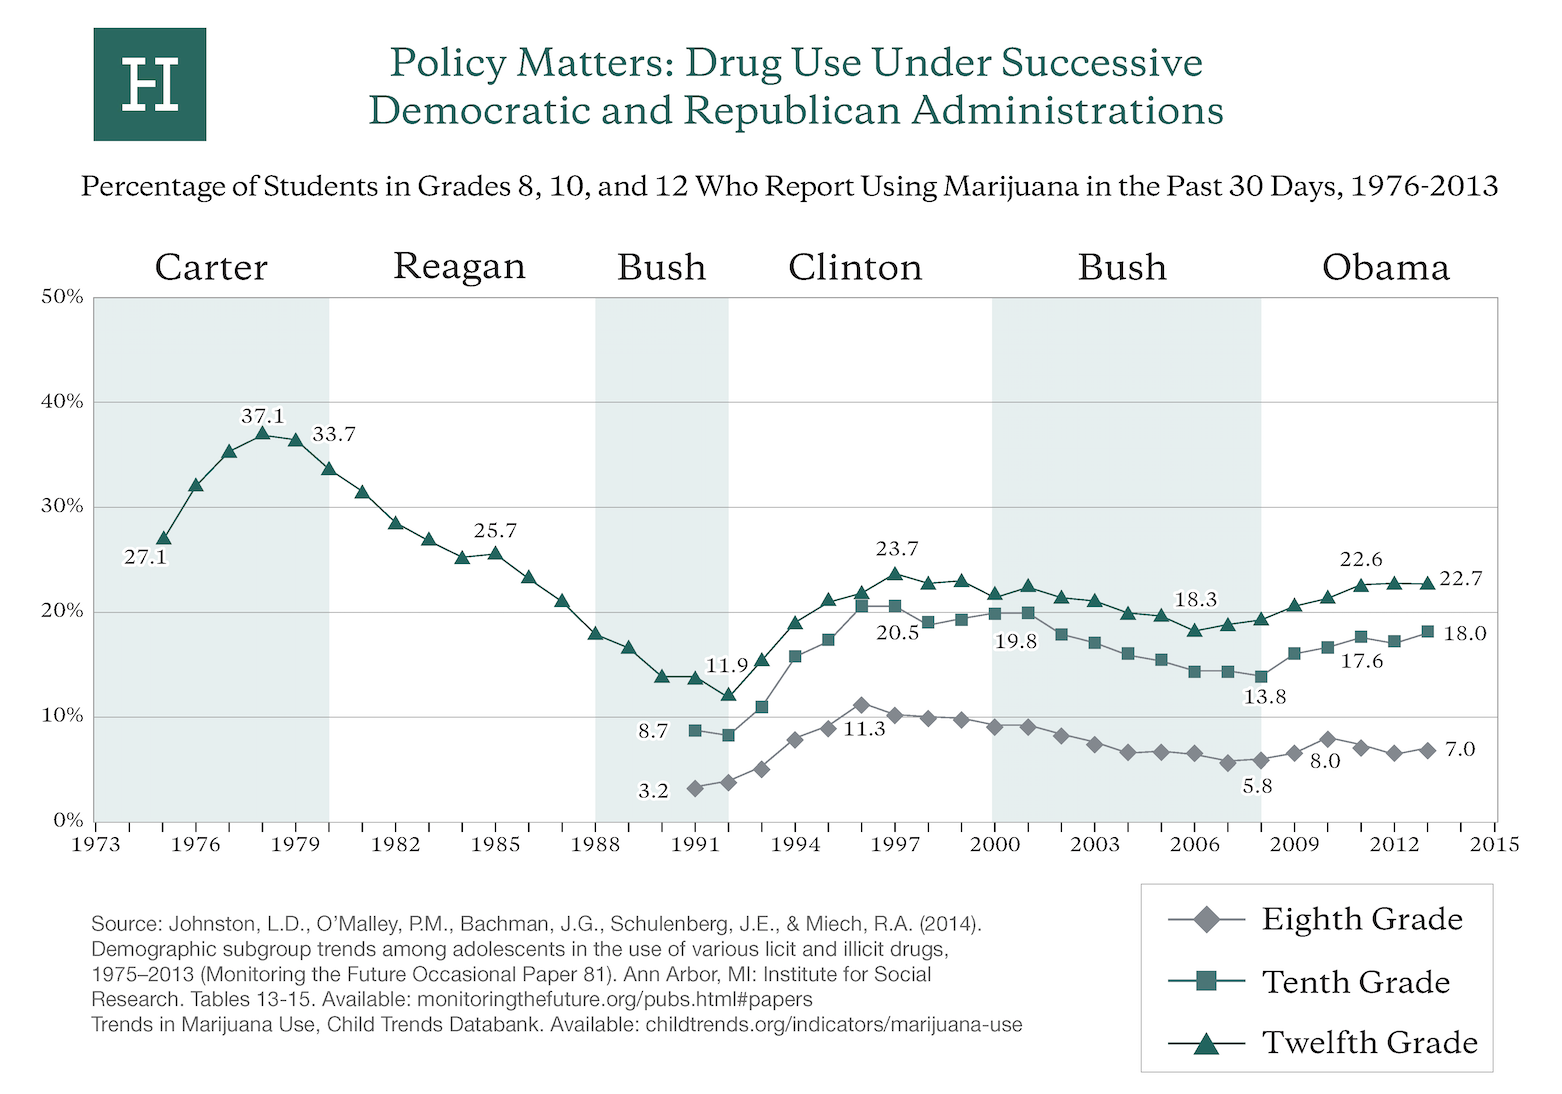 Drug Use Under Successive Administrations